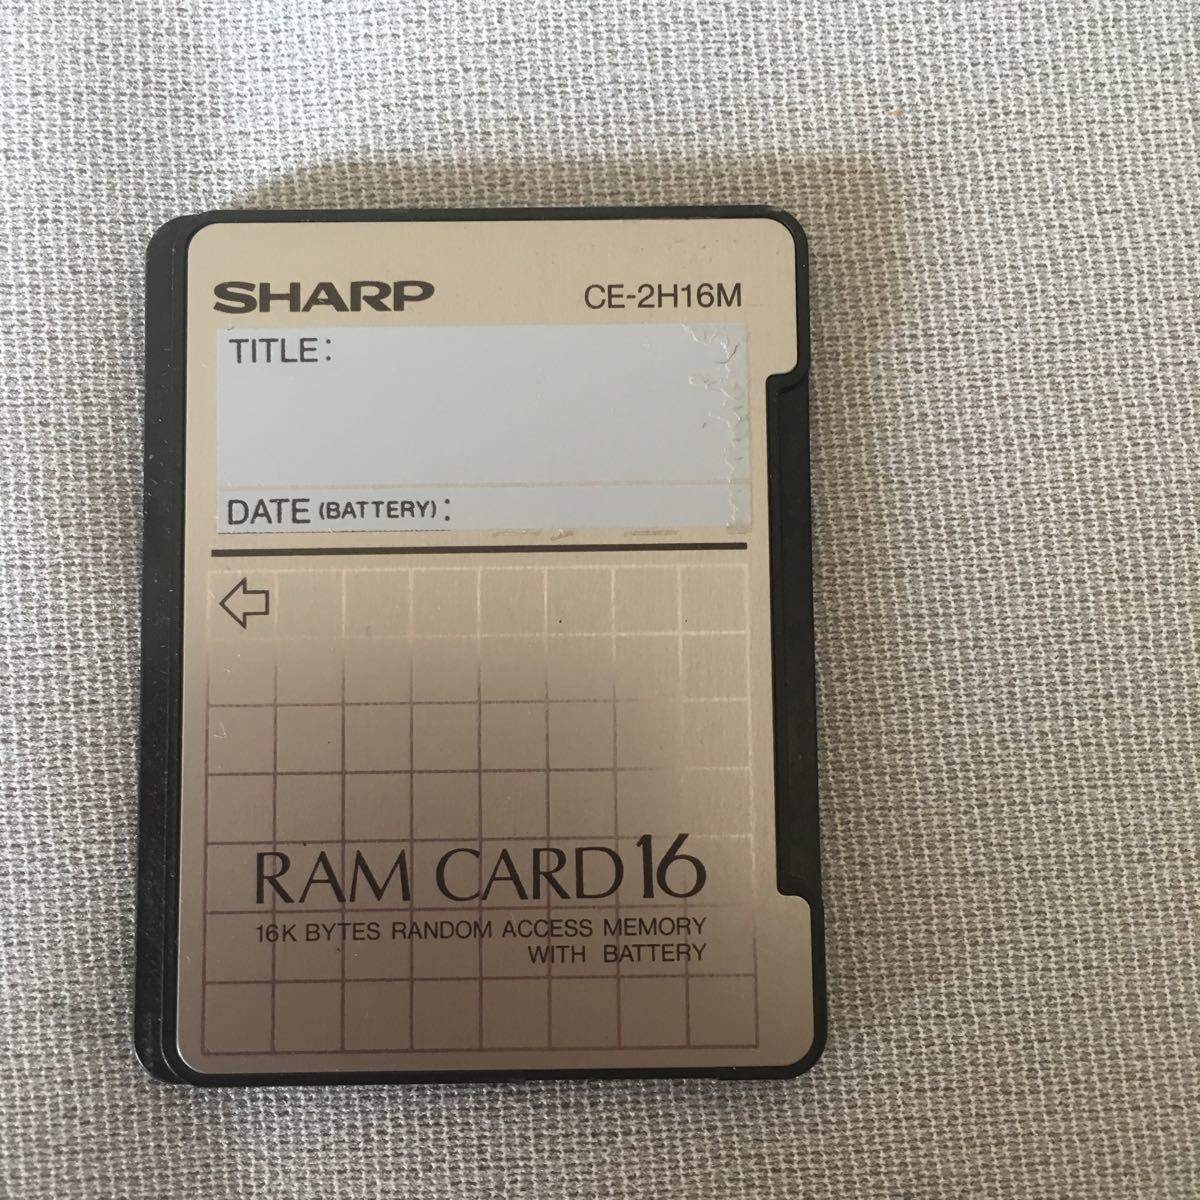 SHARP CE-2H16M